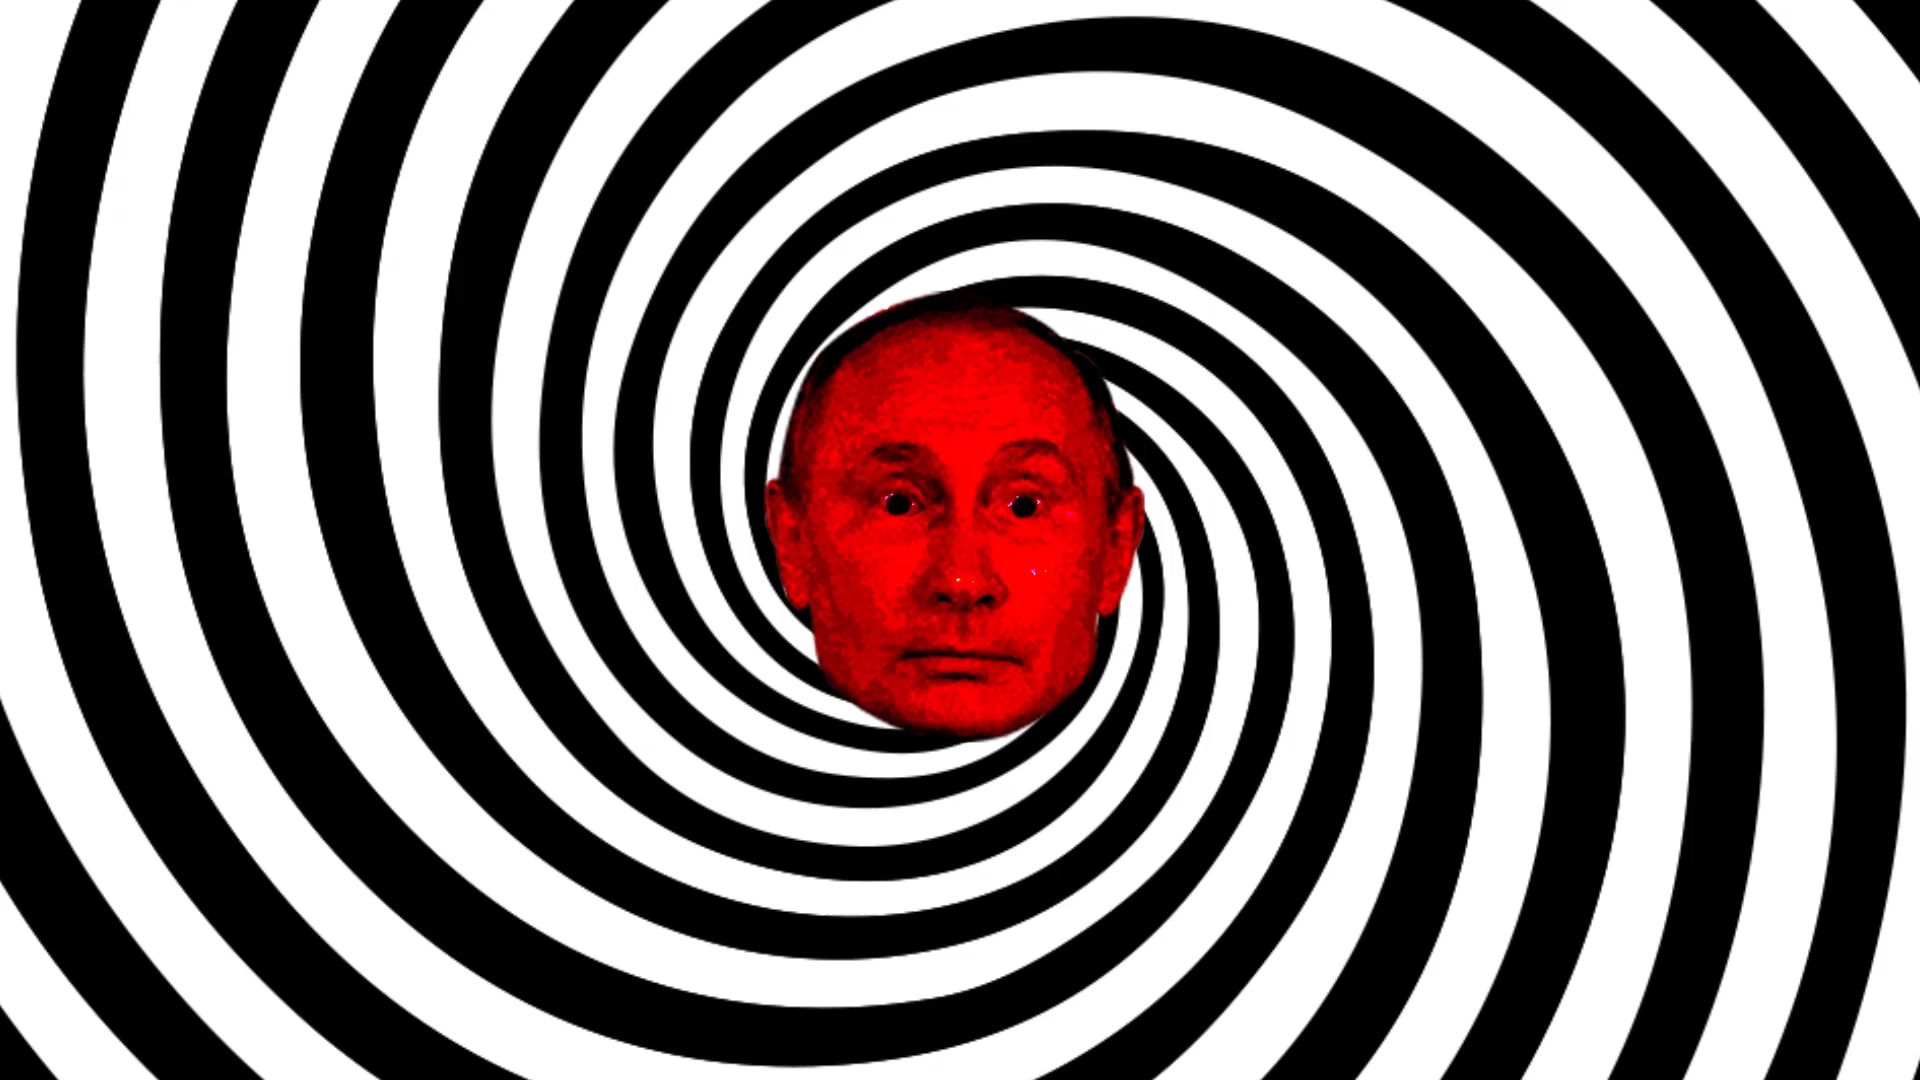 Putin's face in the center of a hypnotic spiral